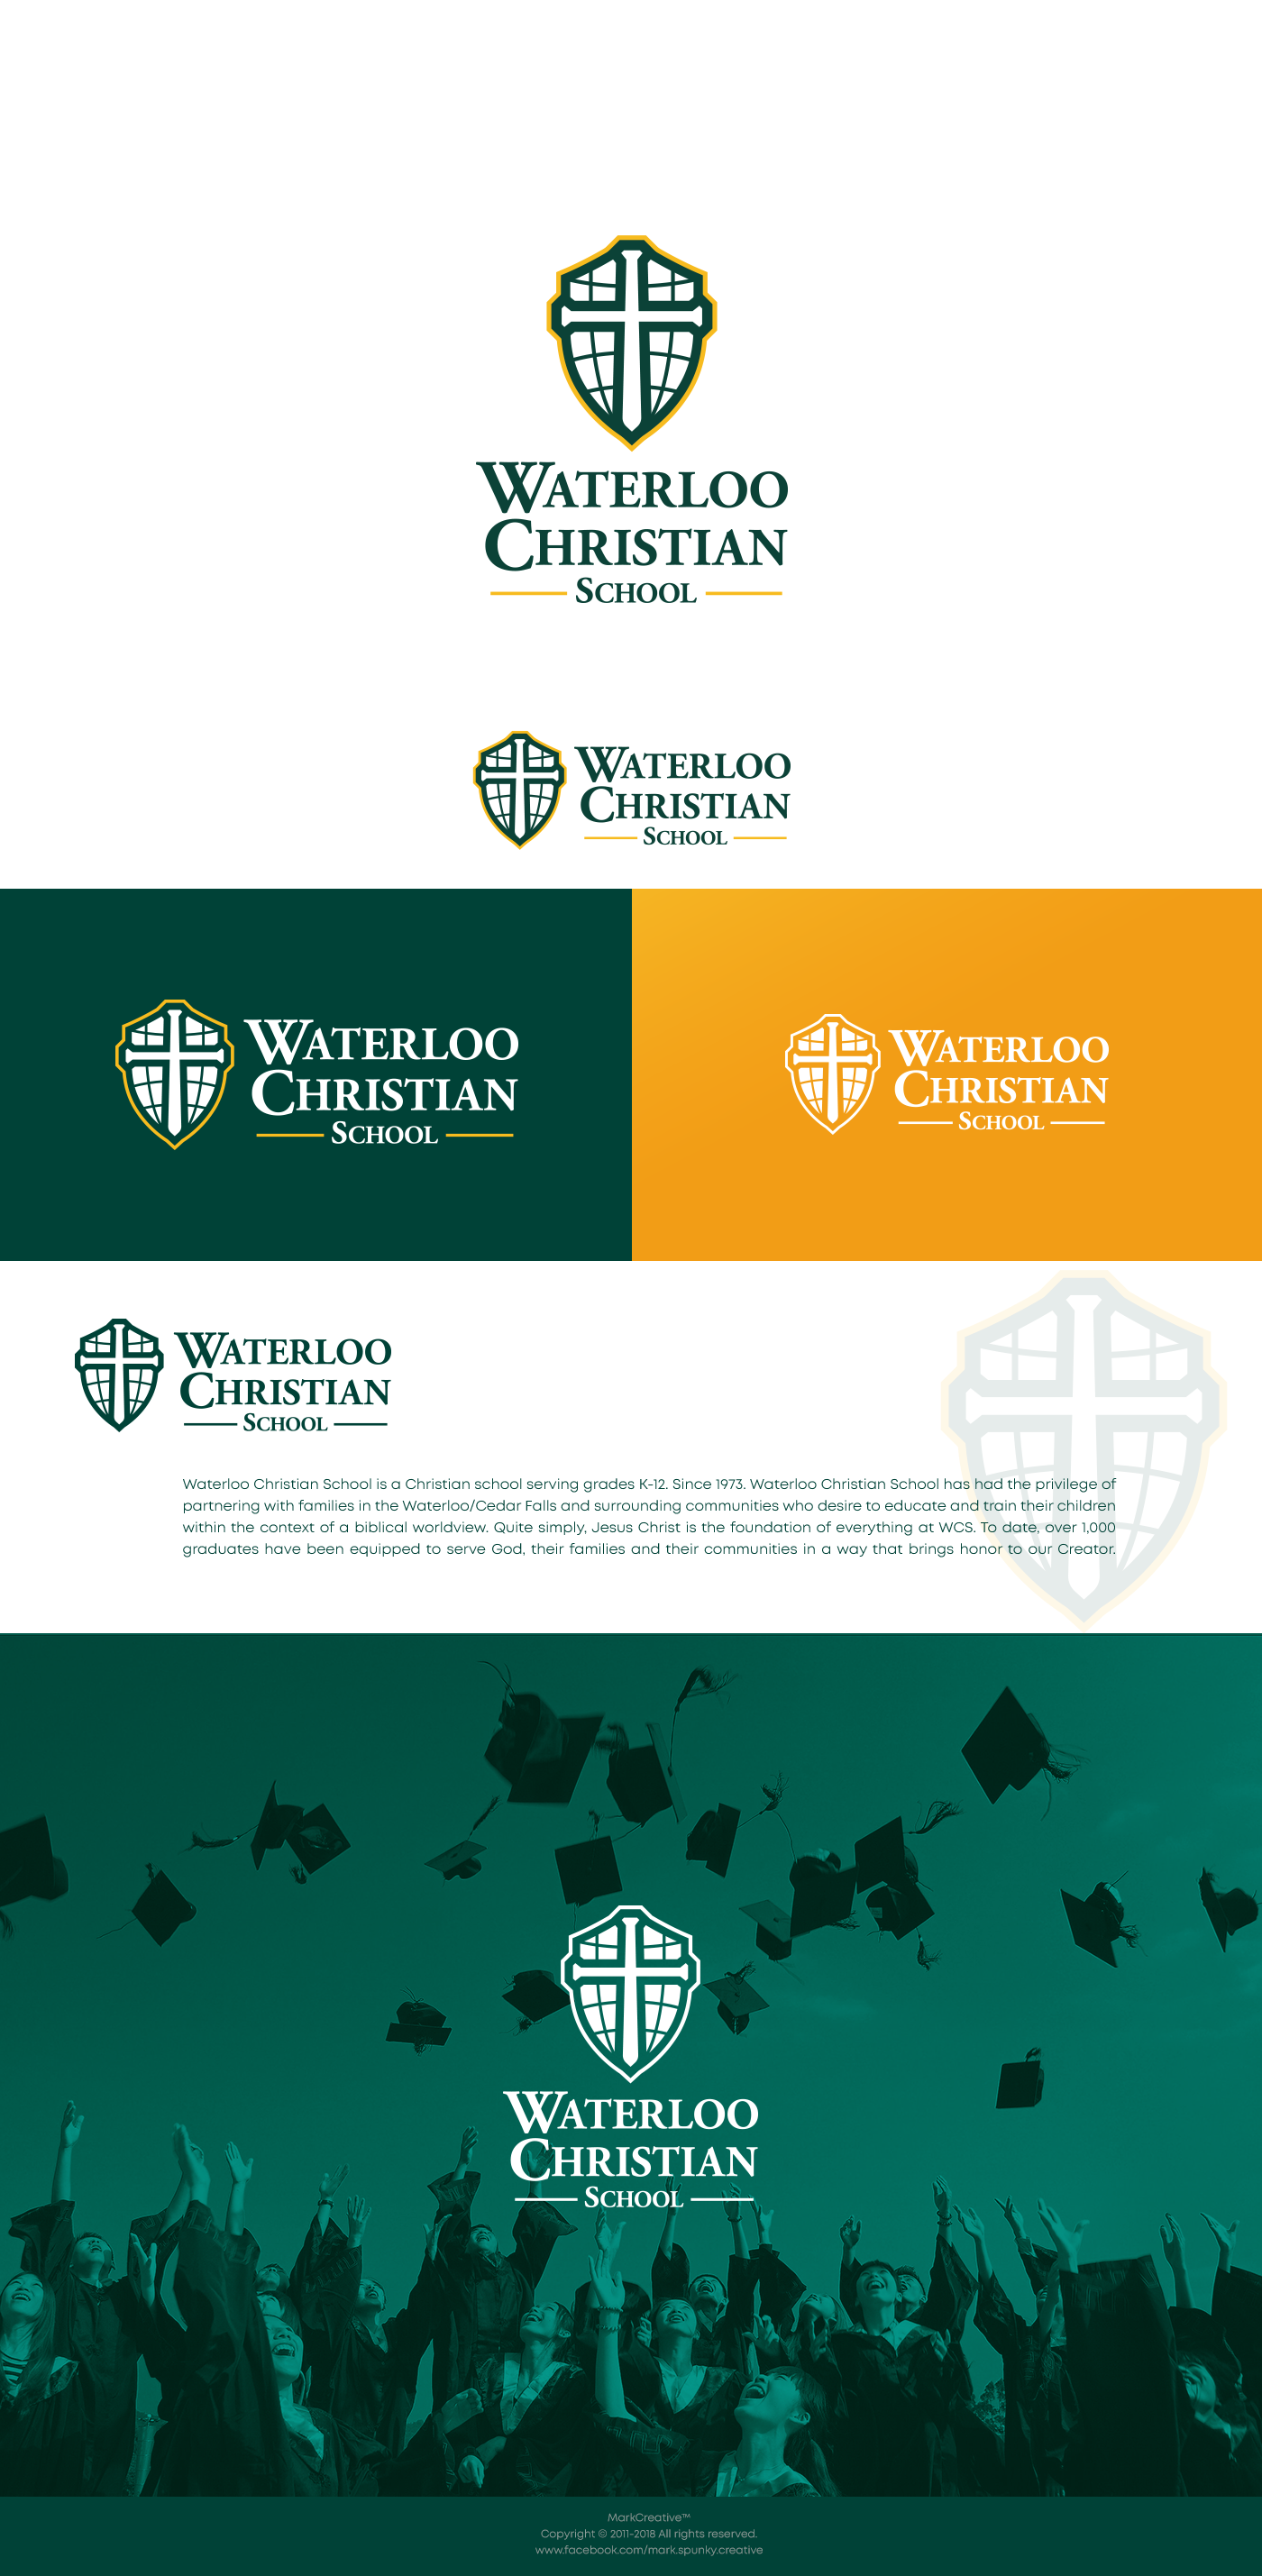 Get creative with our school logo! Clean, modern, and creative logo!